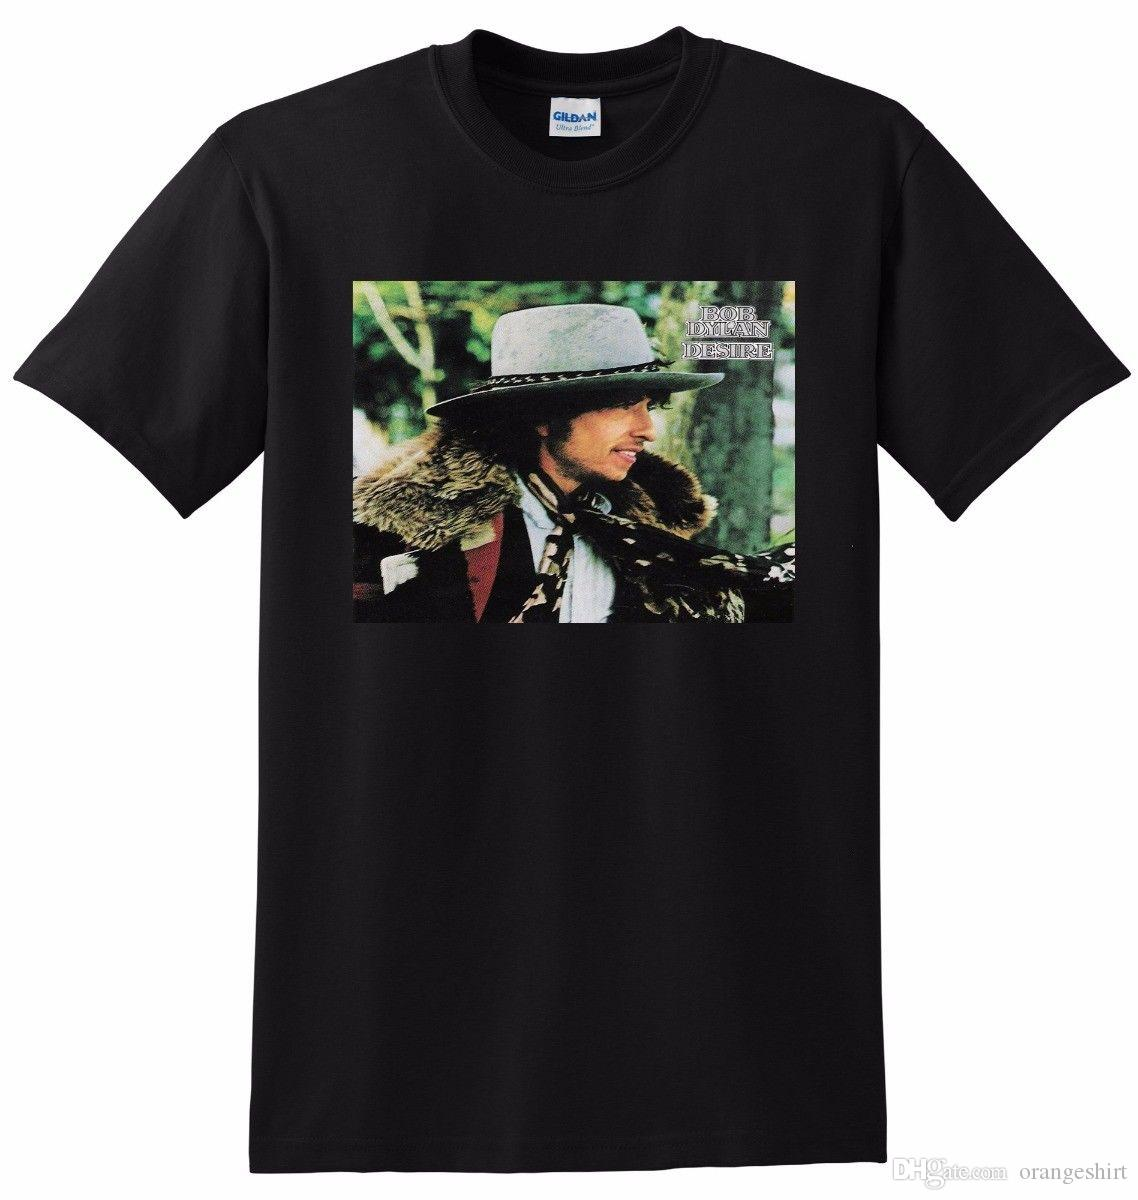 BOB DYLAN T SHIRT desire vinyl cover tee SMALL MEDIUM LARGE or XL